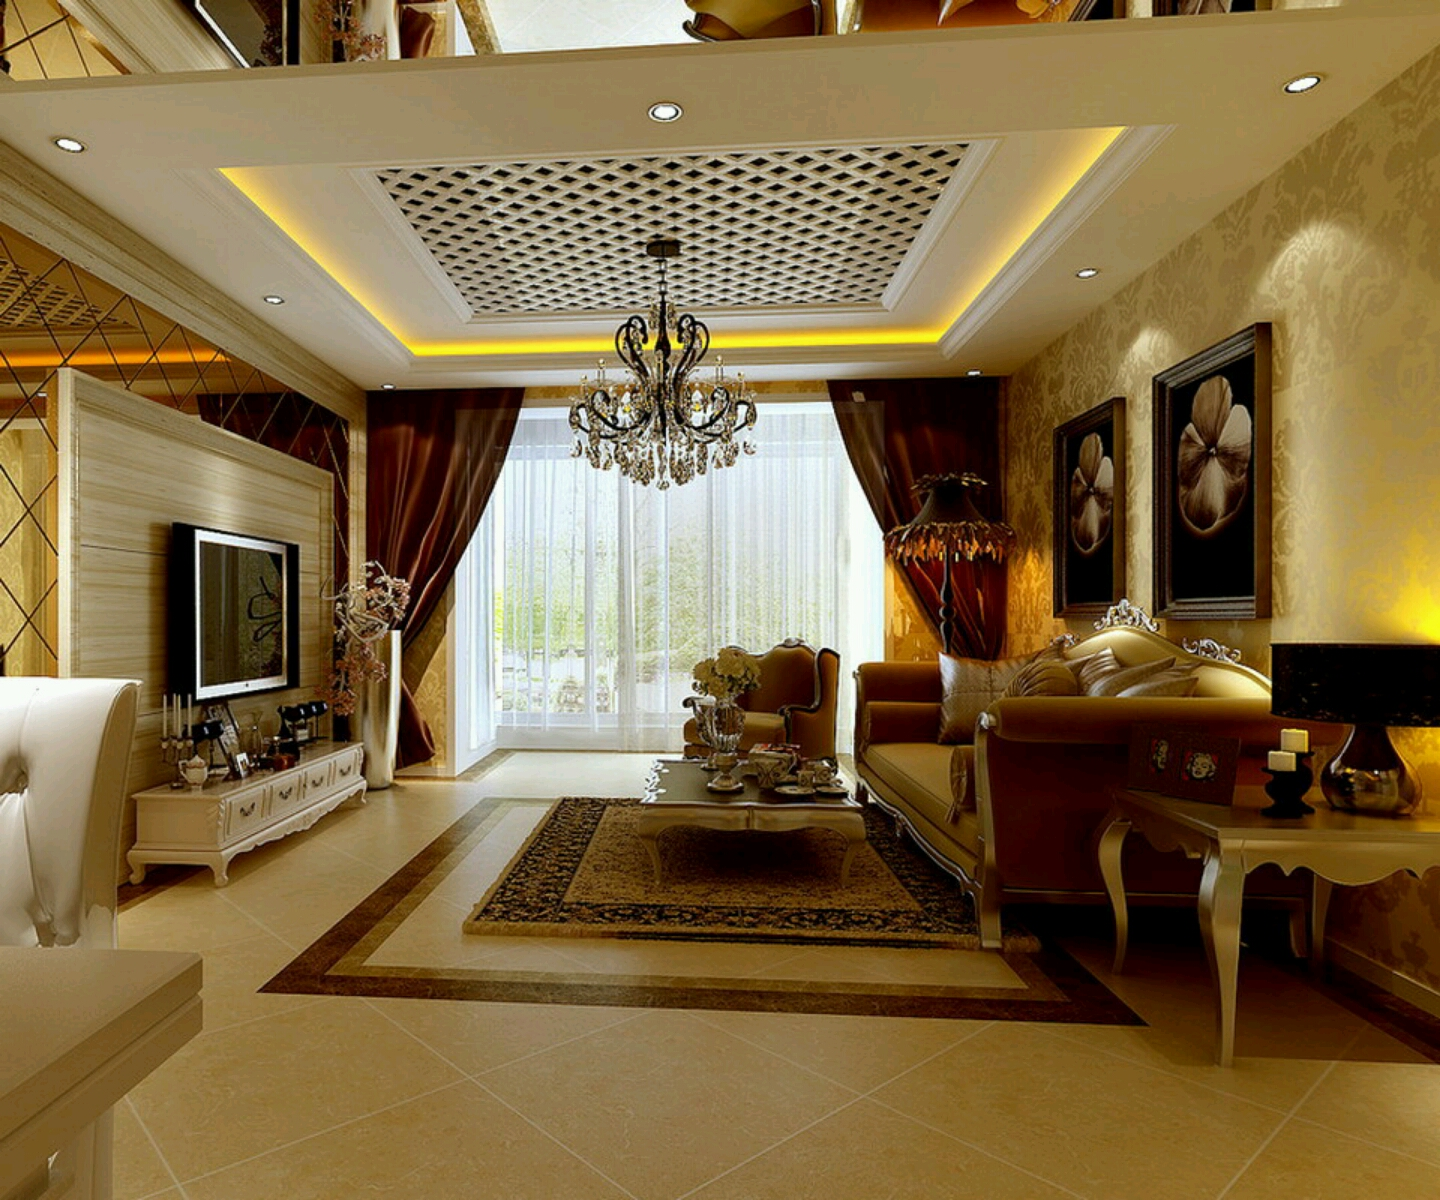 New home designs latest luxury homes interior decoration for Best interior decorating sites